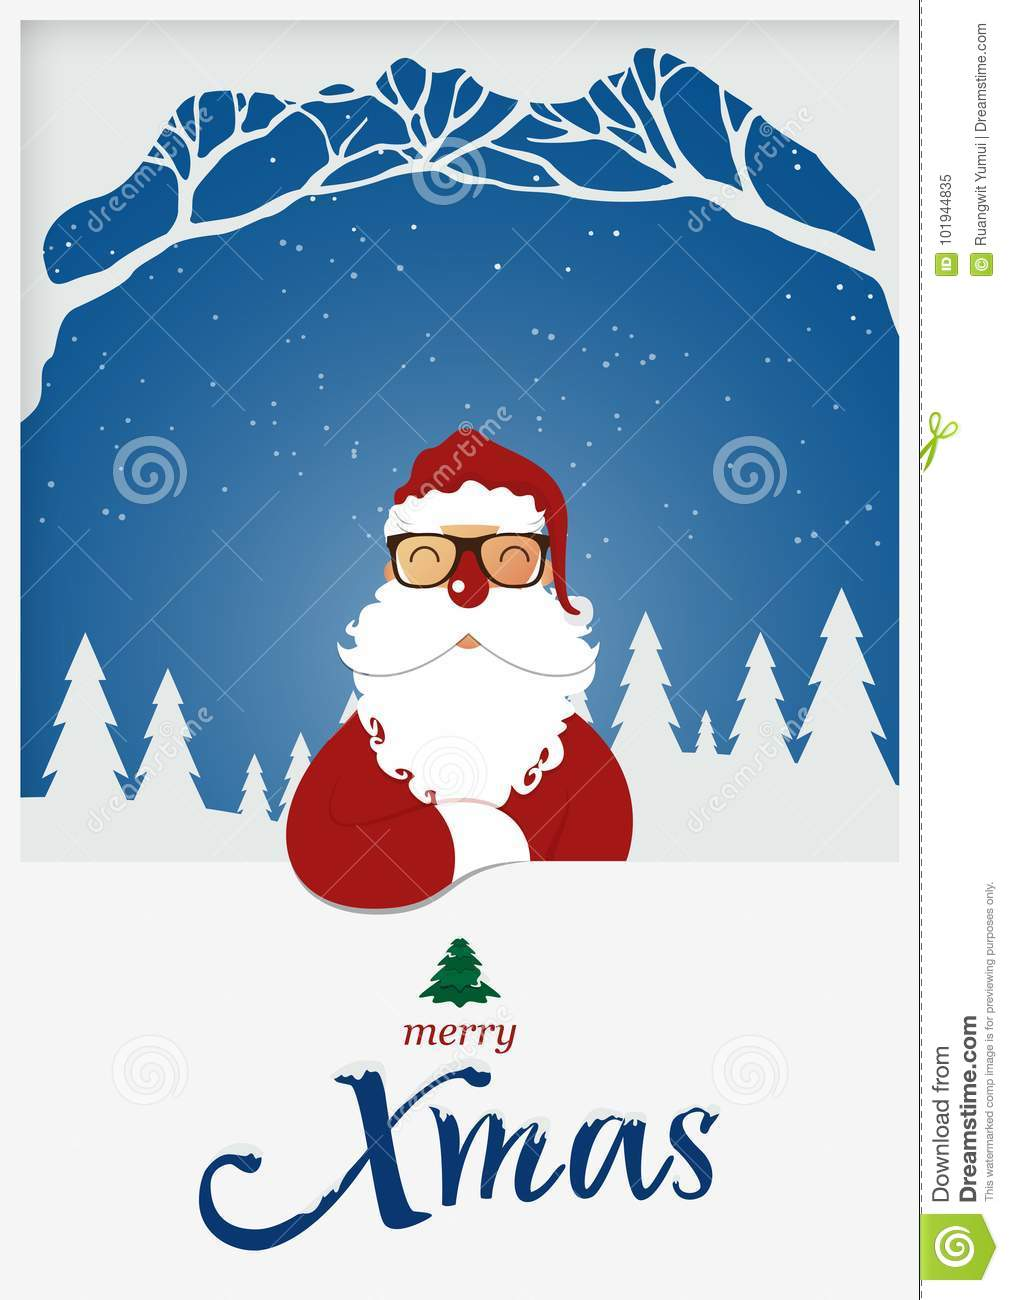 Happy Merry Christmas Greeting Card Santa Claus Red Nose Standing